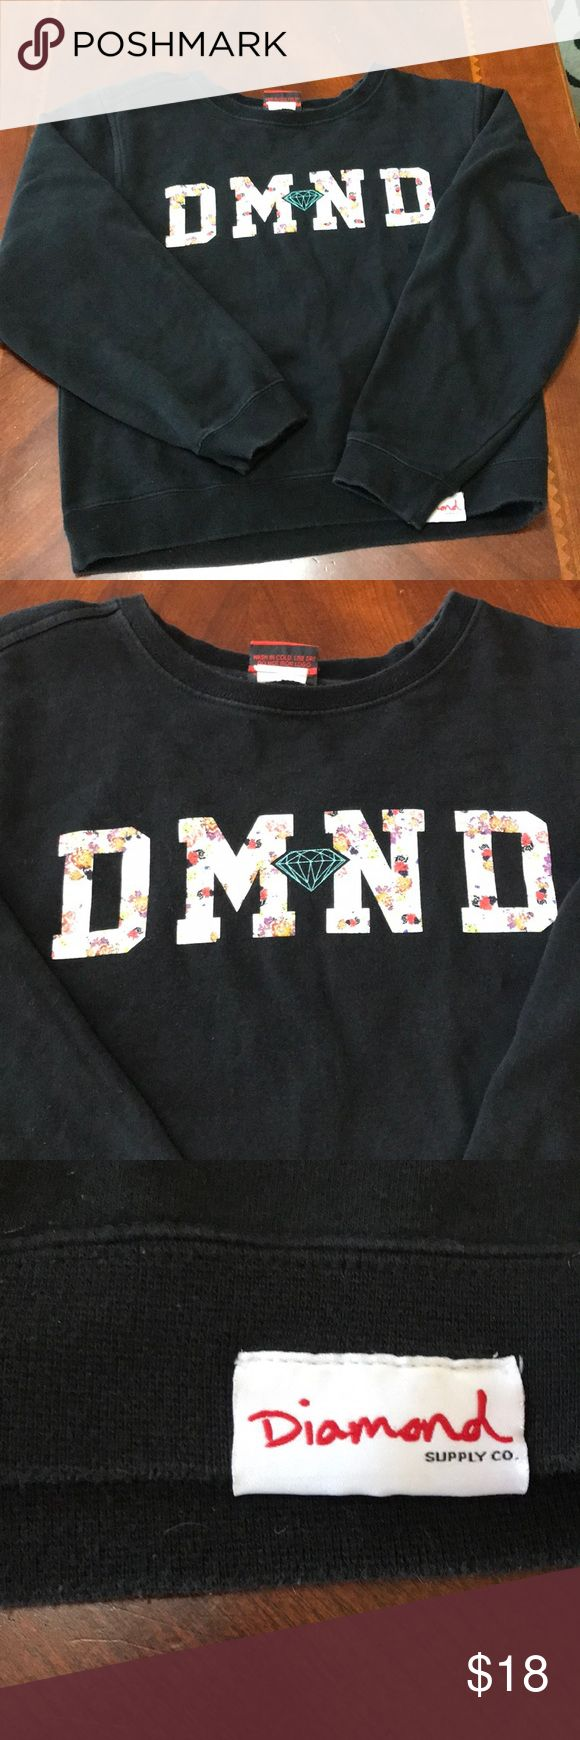 Diamond Supply Company Sweatshirt Diamond Supply Company Sweatshirt. In good but used condition. I love the 💎 print on the sleeve! Great Sweatshirt! Diamond Supply Co. Tops Sweatshirts & Hoodies